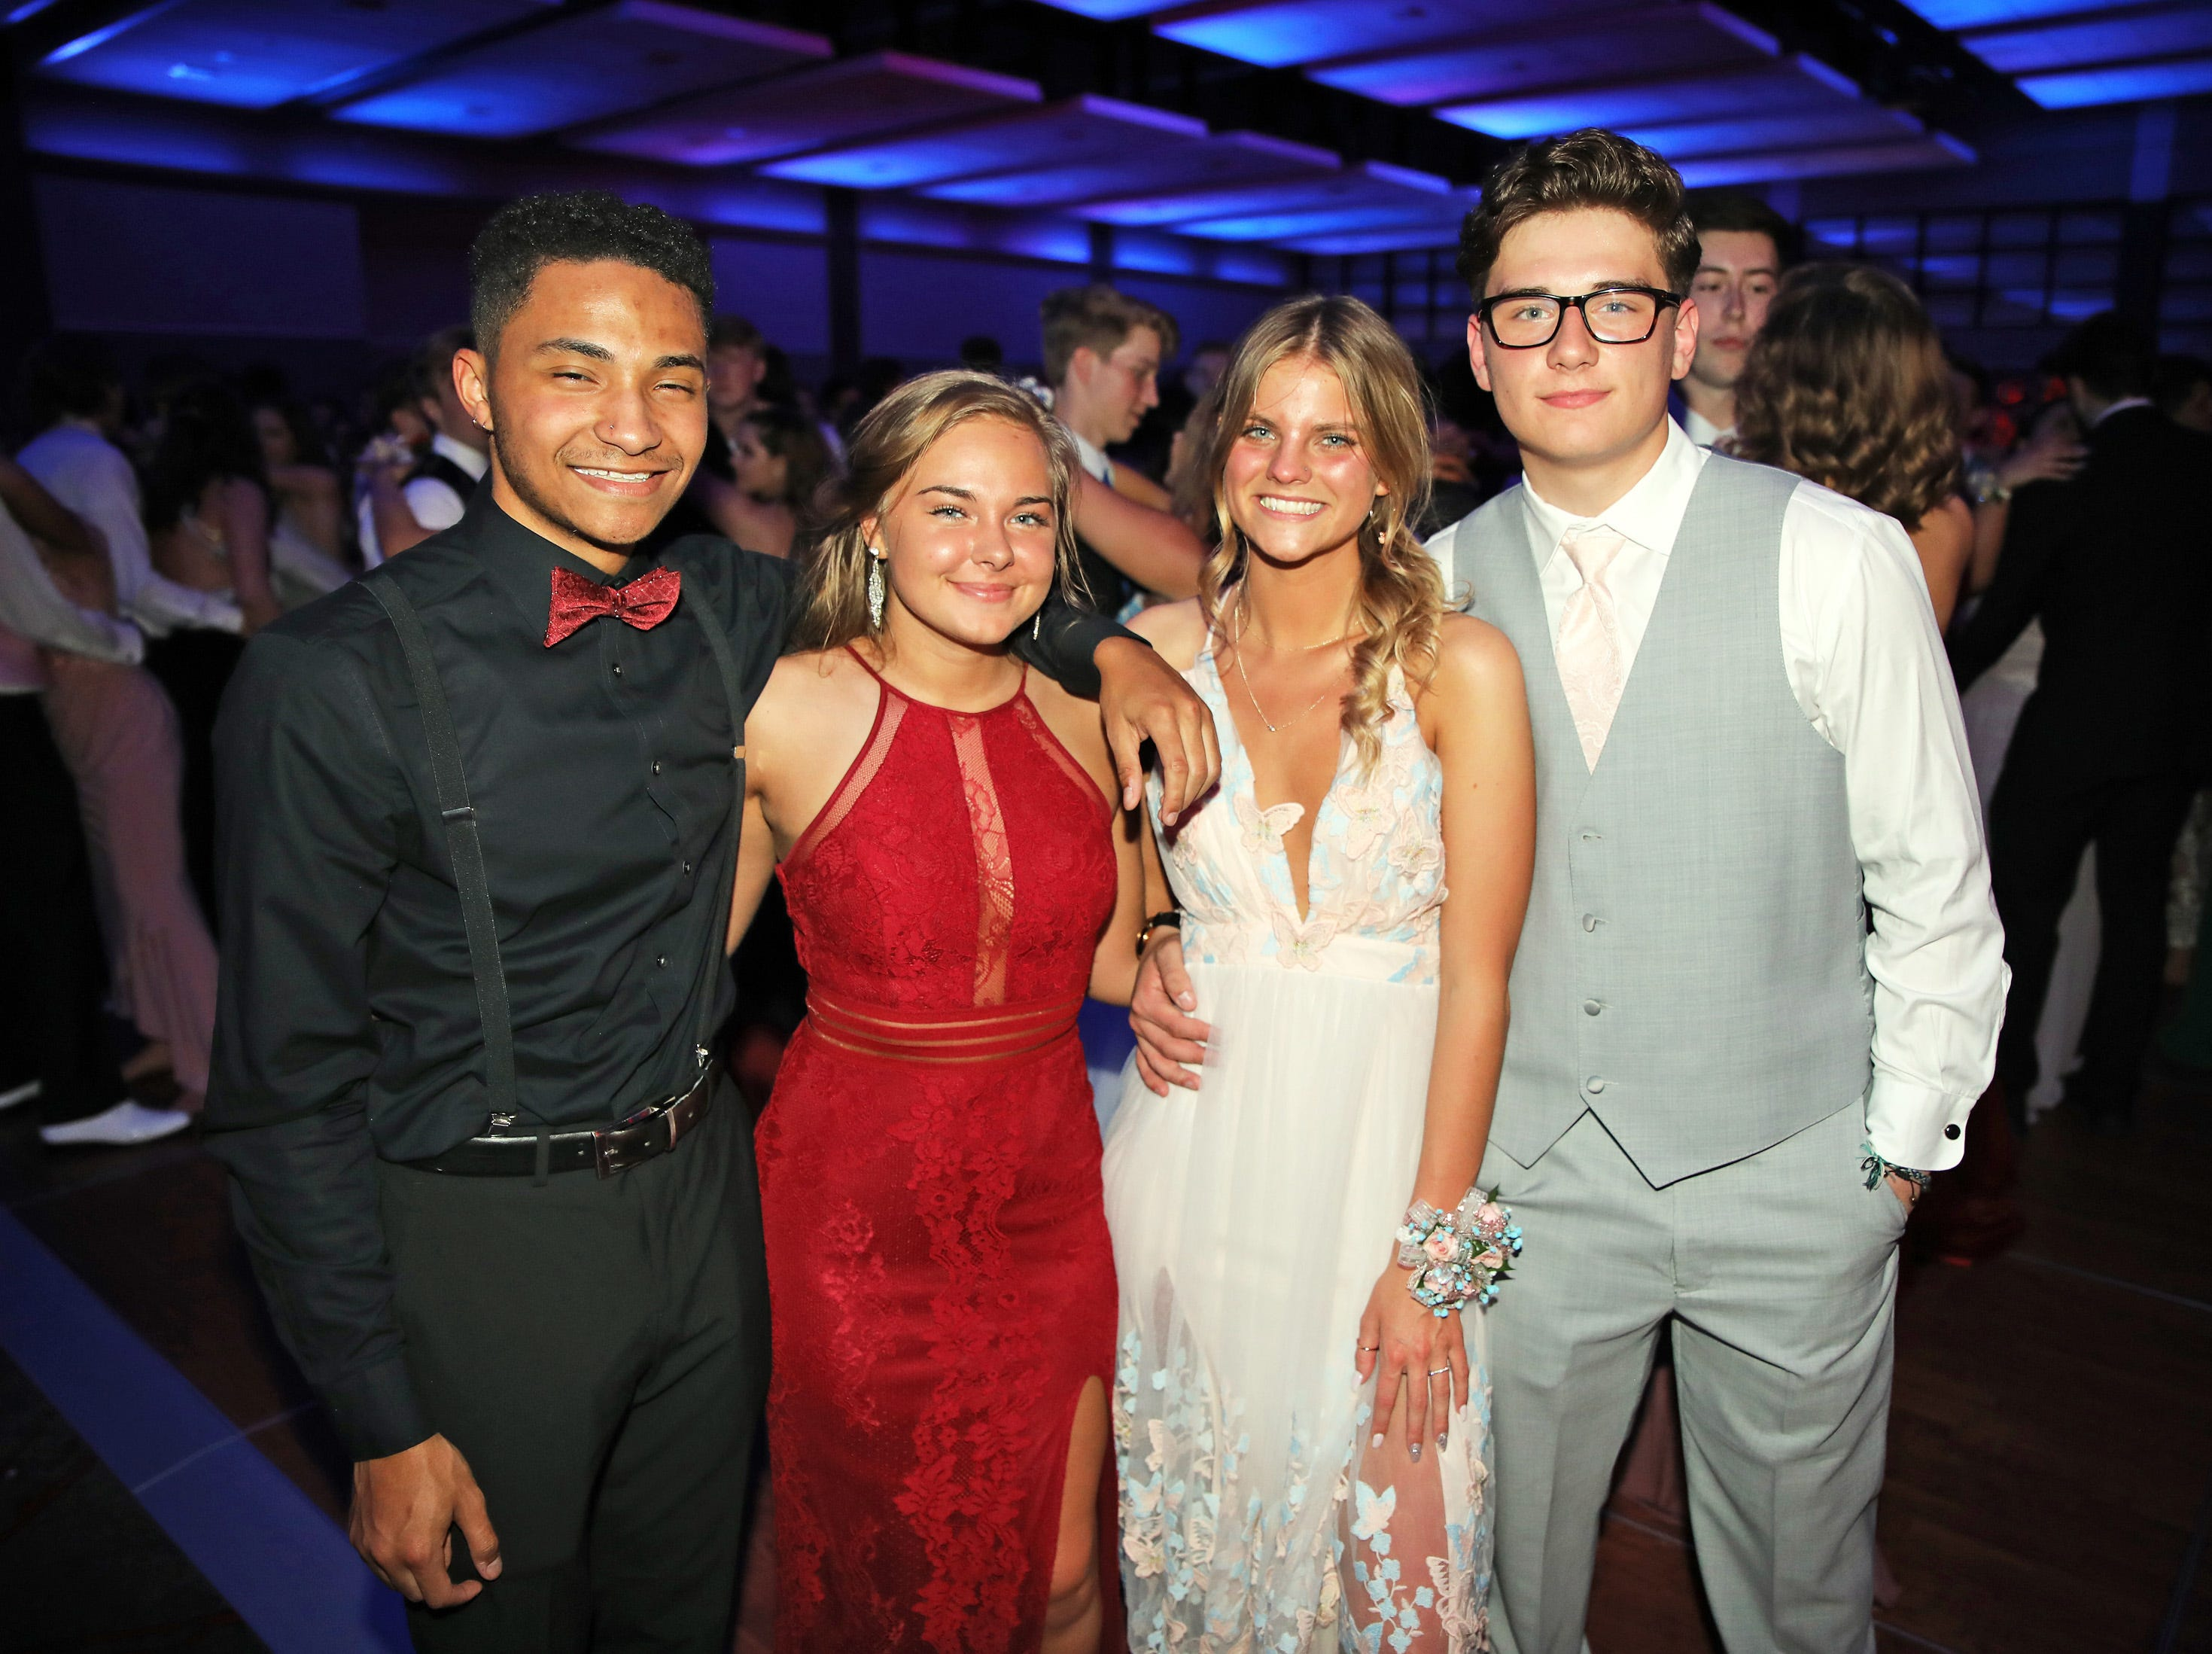 Left to right: Chaise Russell, Alyssa Vander Vorst, Breanna Girard, and Chance Palmer enjoy the Waukee High School Prom at the Ron Pearson Center in West Des Moines on Saturday, April 6, 2019.